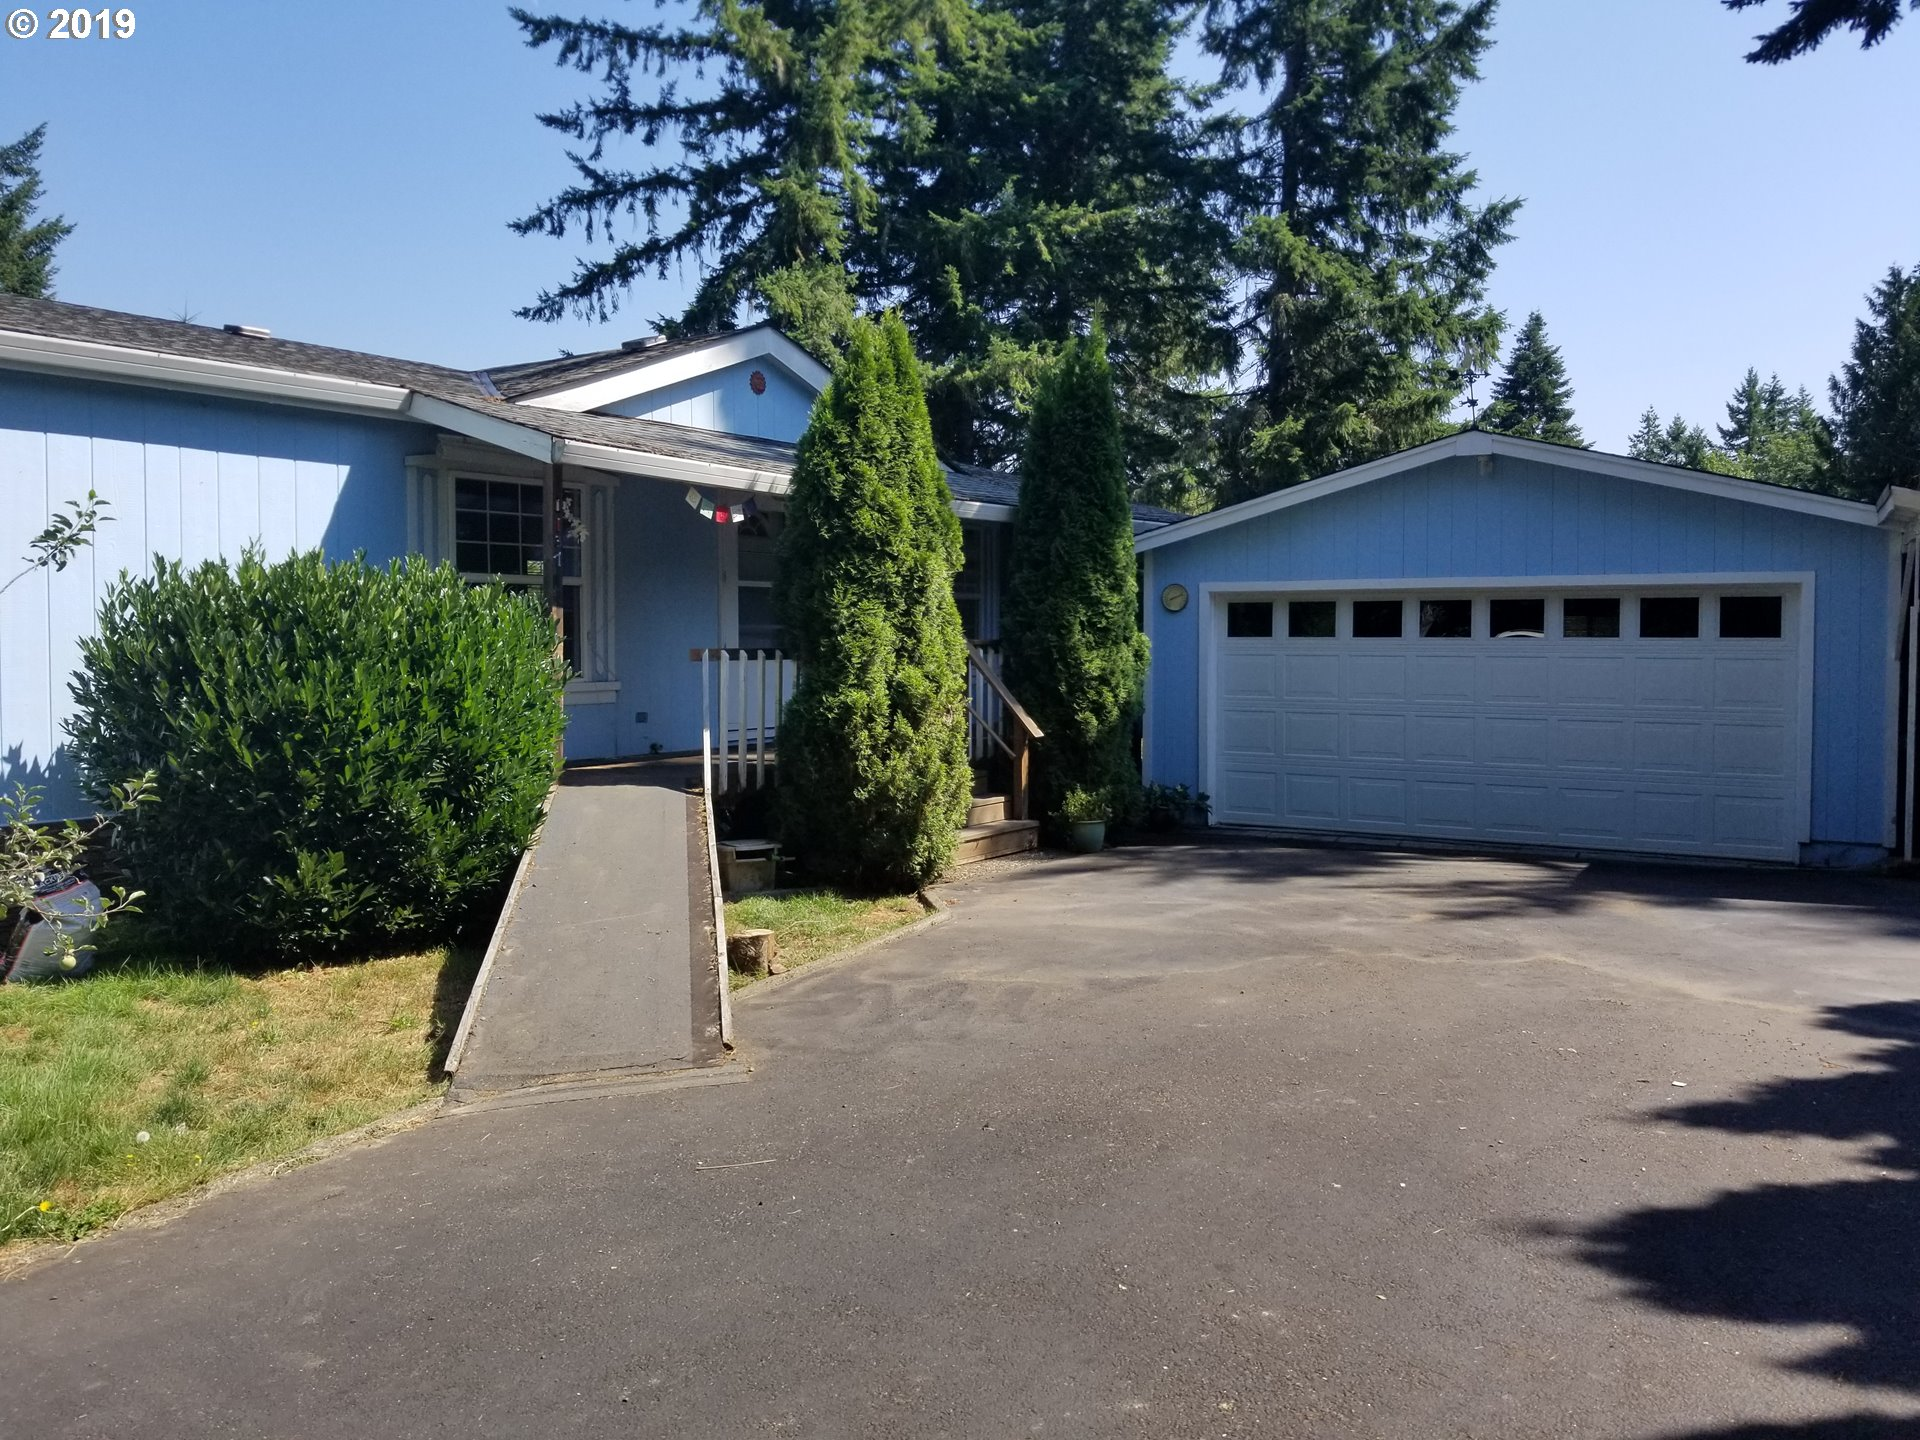 Vernonia Double Wide Manufact built 1993